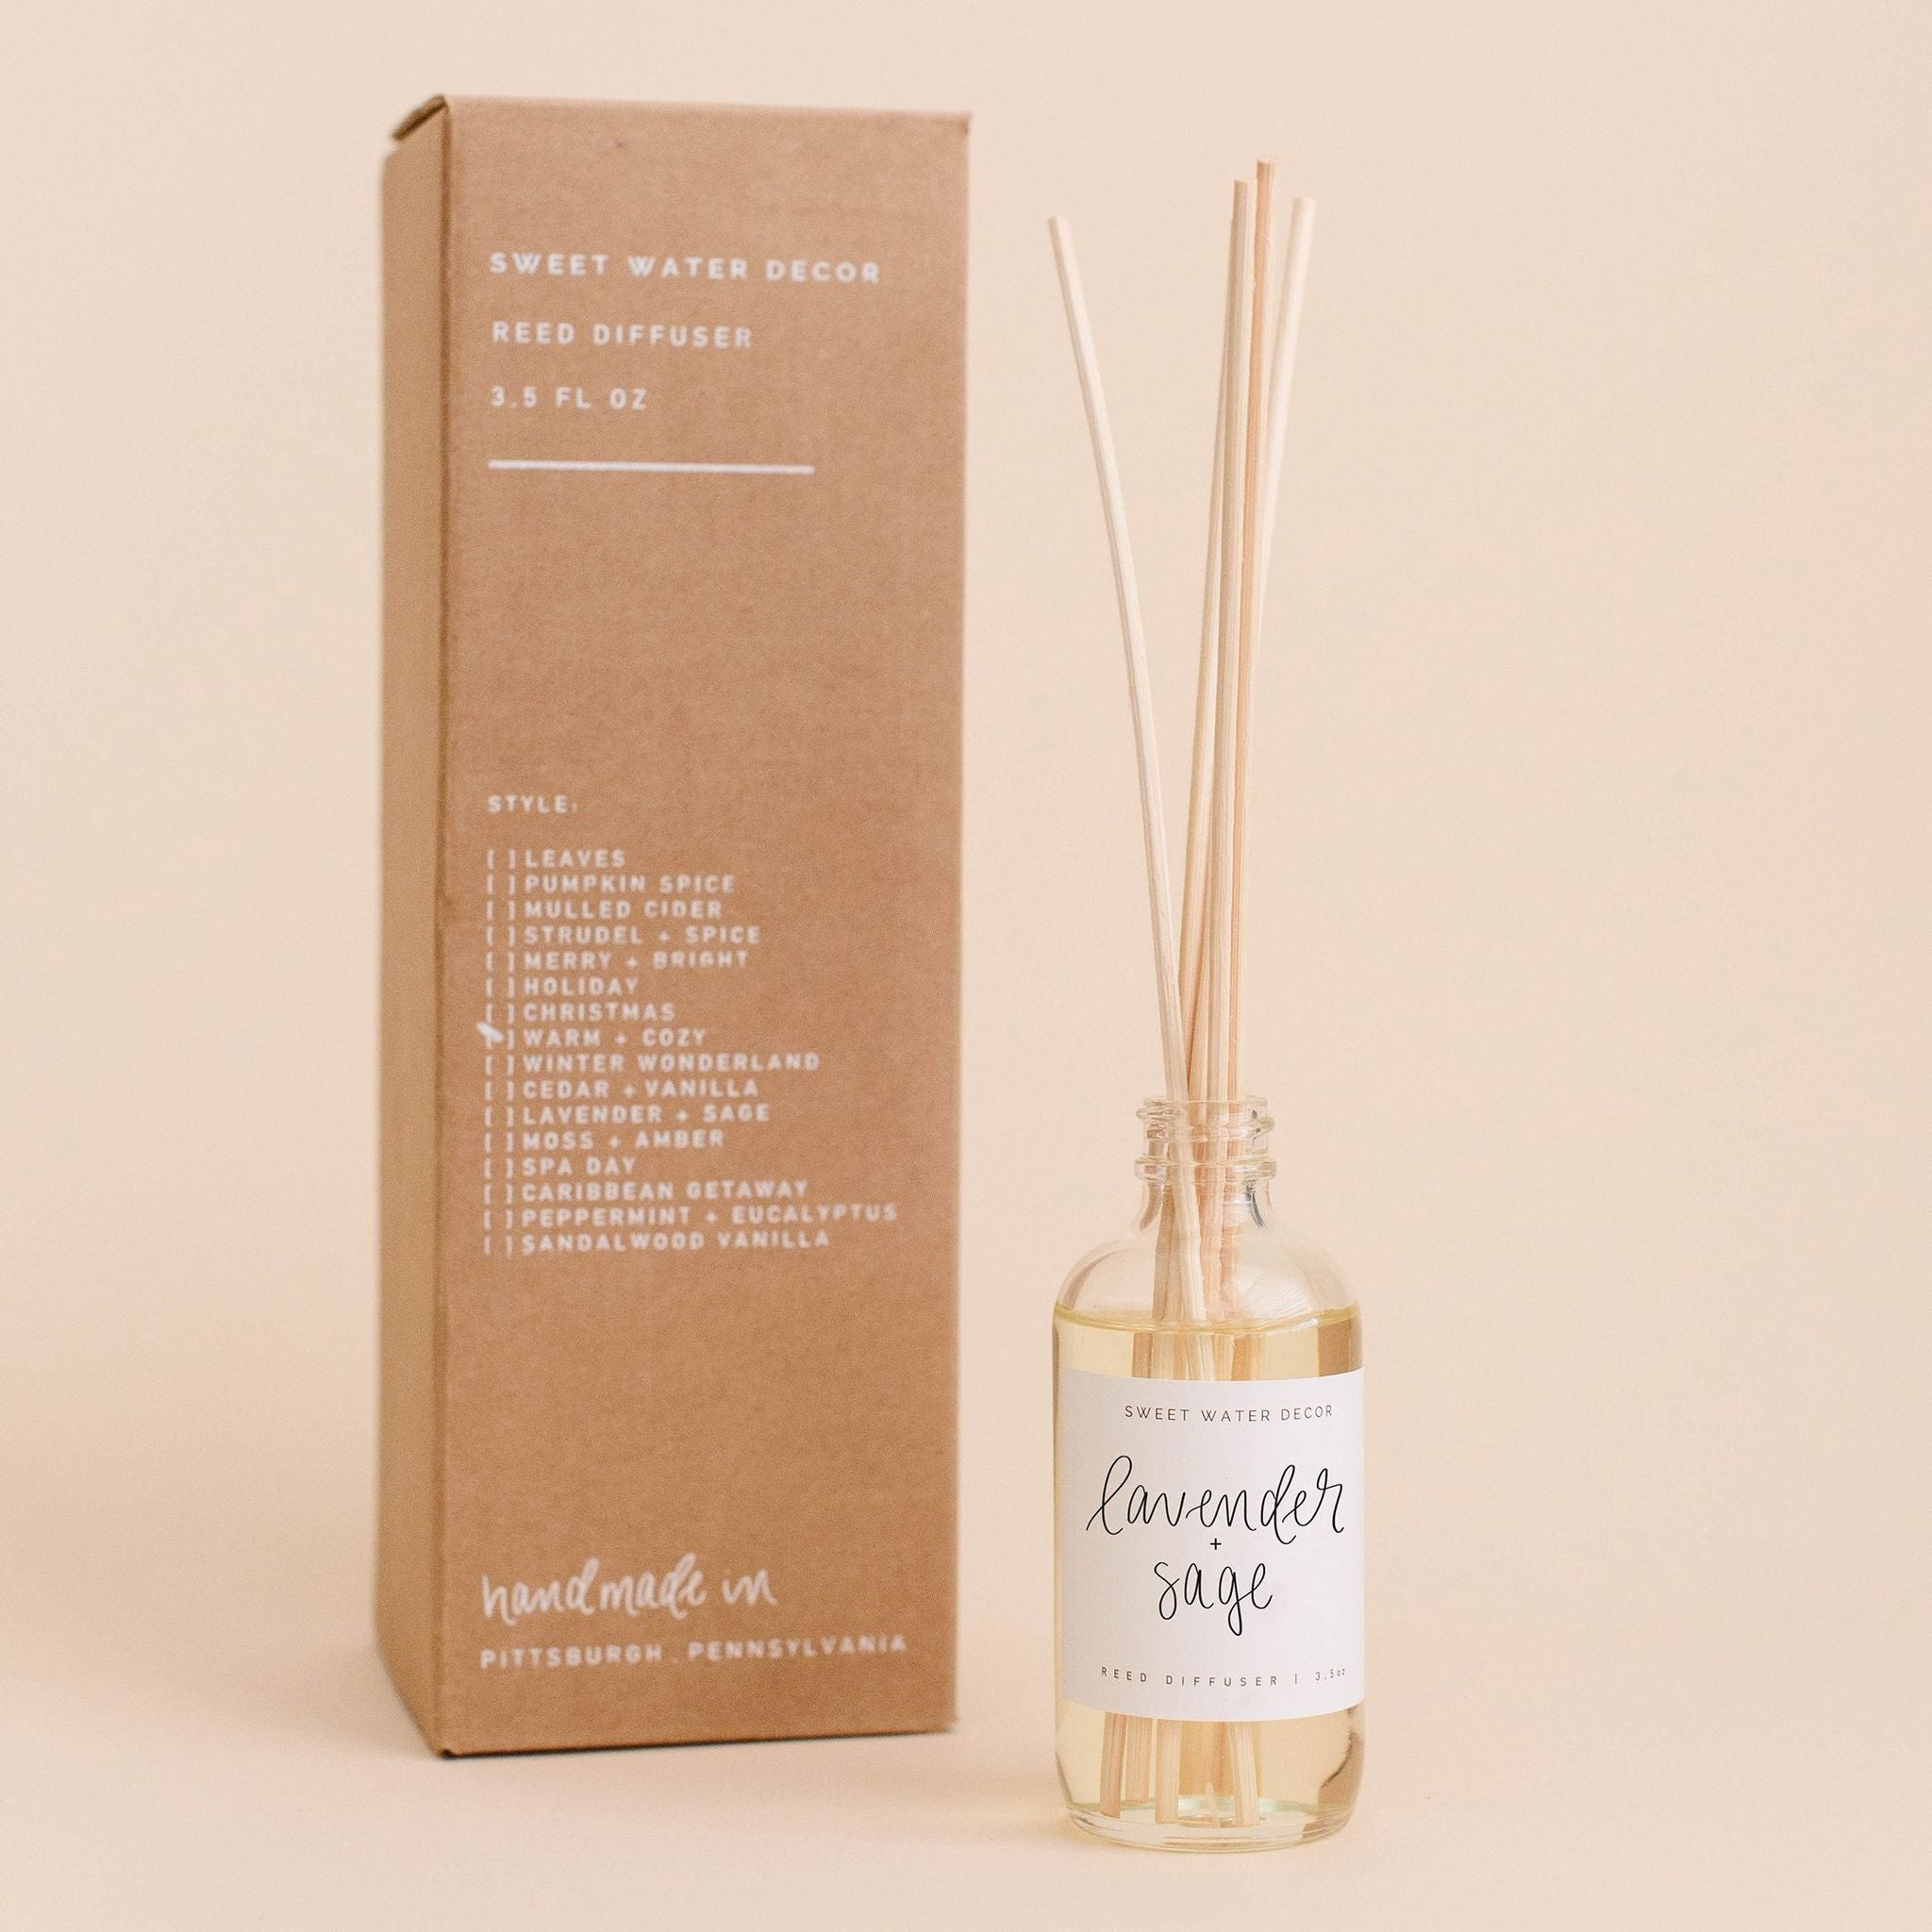 SWD Lavender & Sage Reed Diffuser